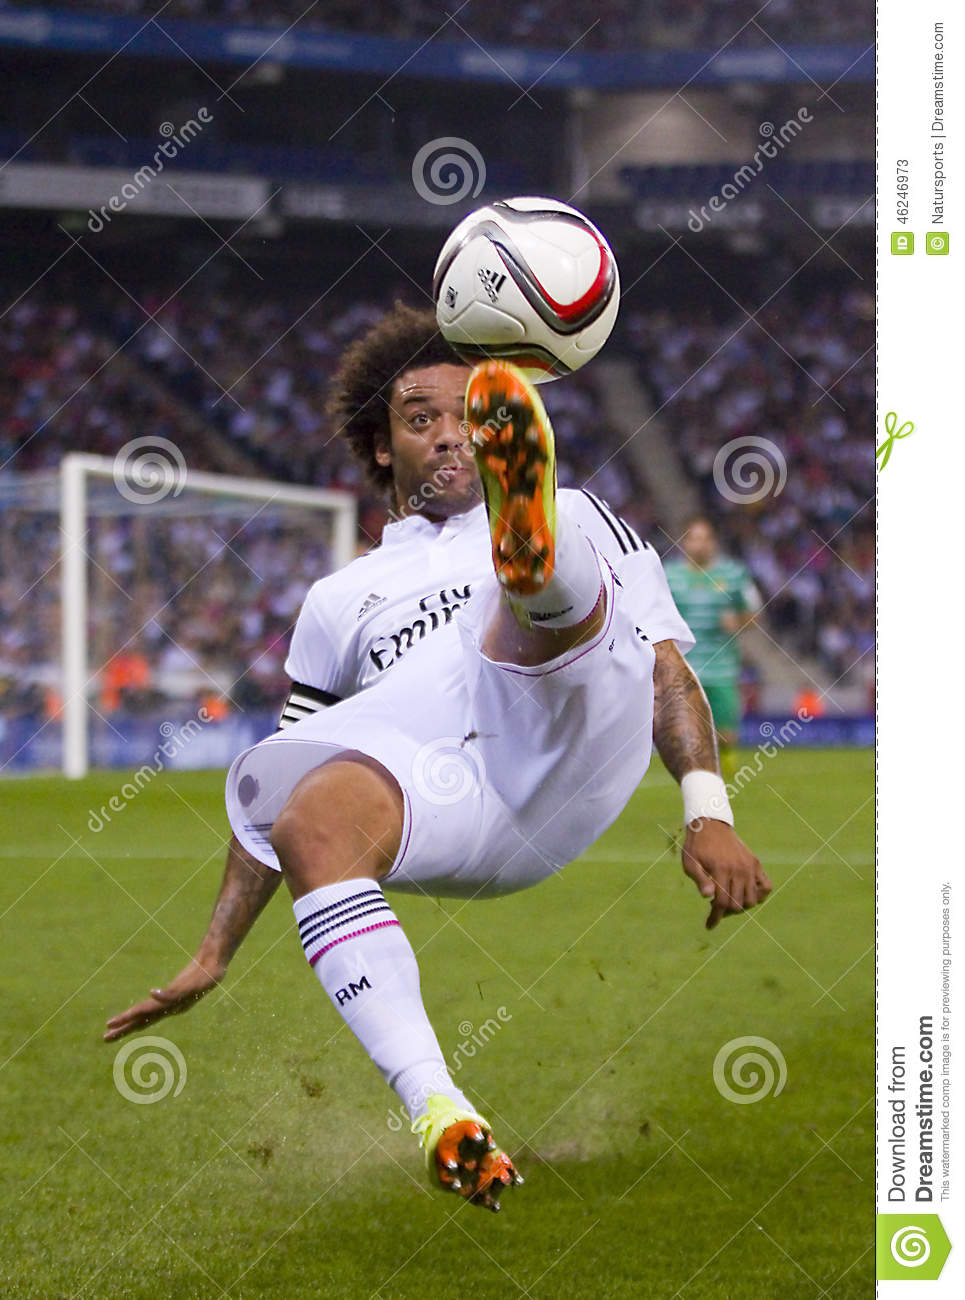 Bicycle kick of Marcelo editorial stock photo Image of match